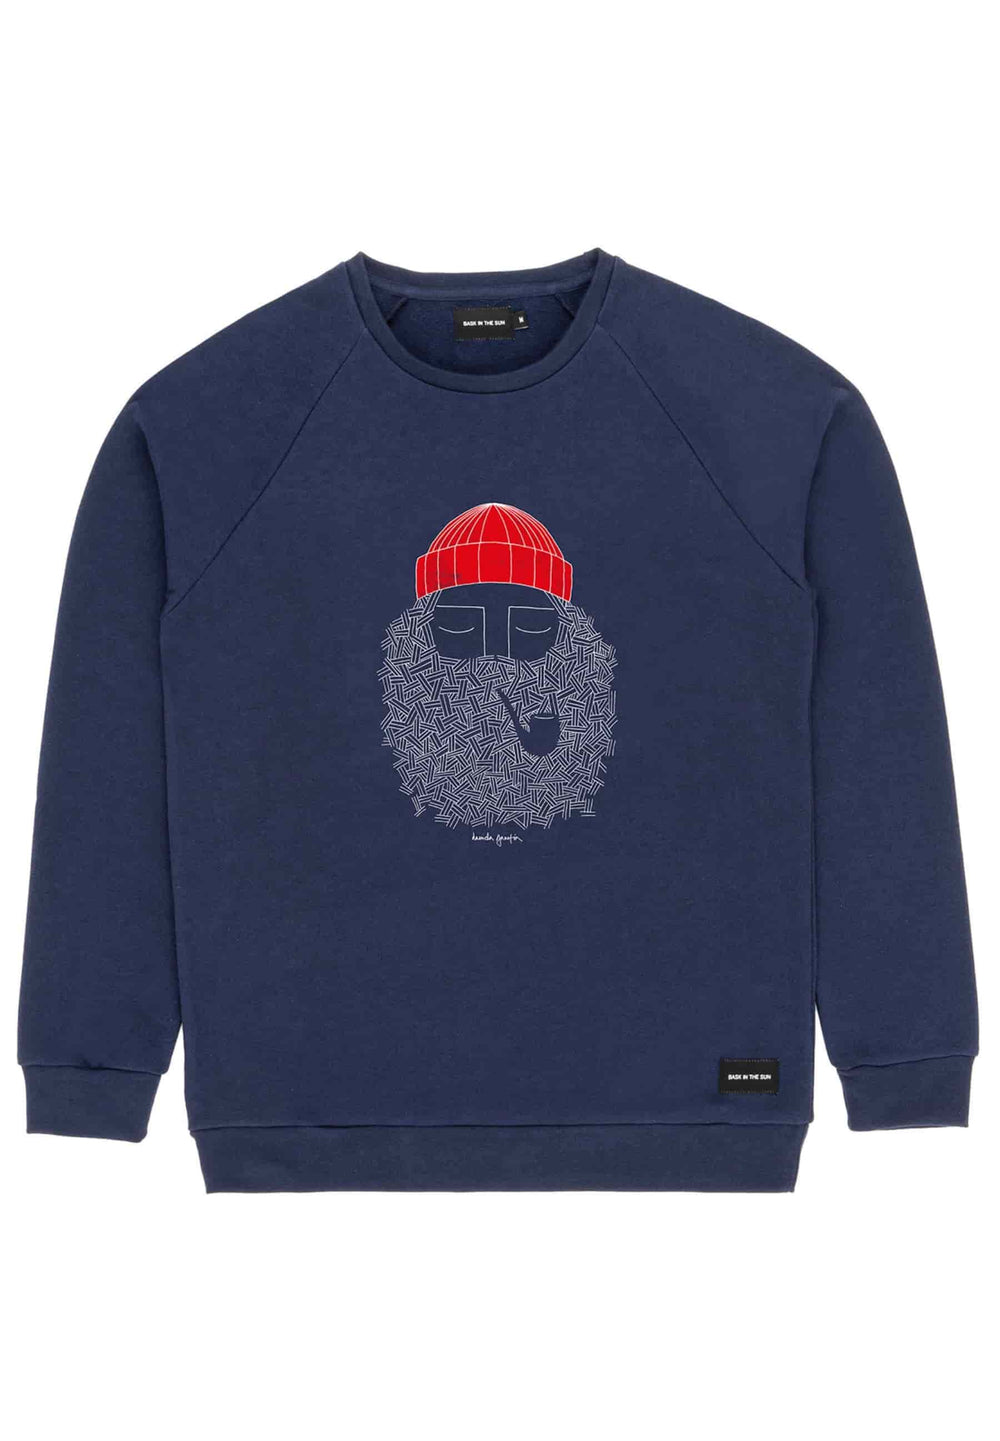 BASK IN THE SUN Sweat-shirts Sweatshirt Smoking Pipe Bleu nuit